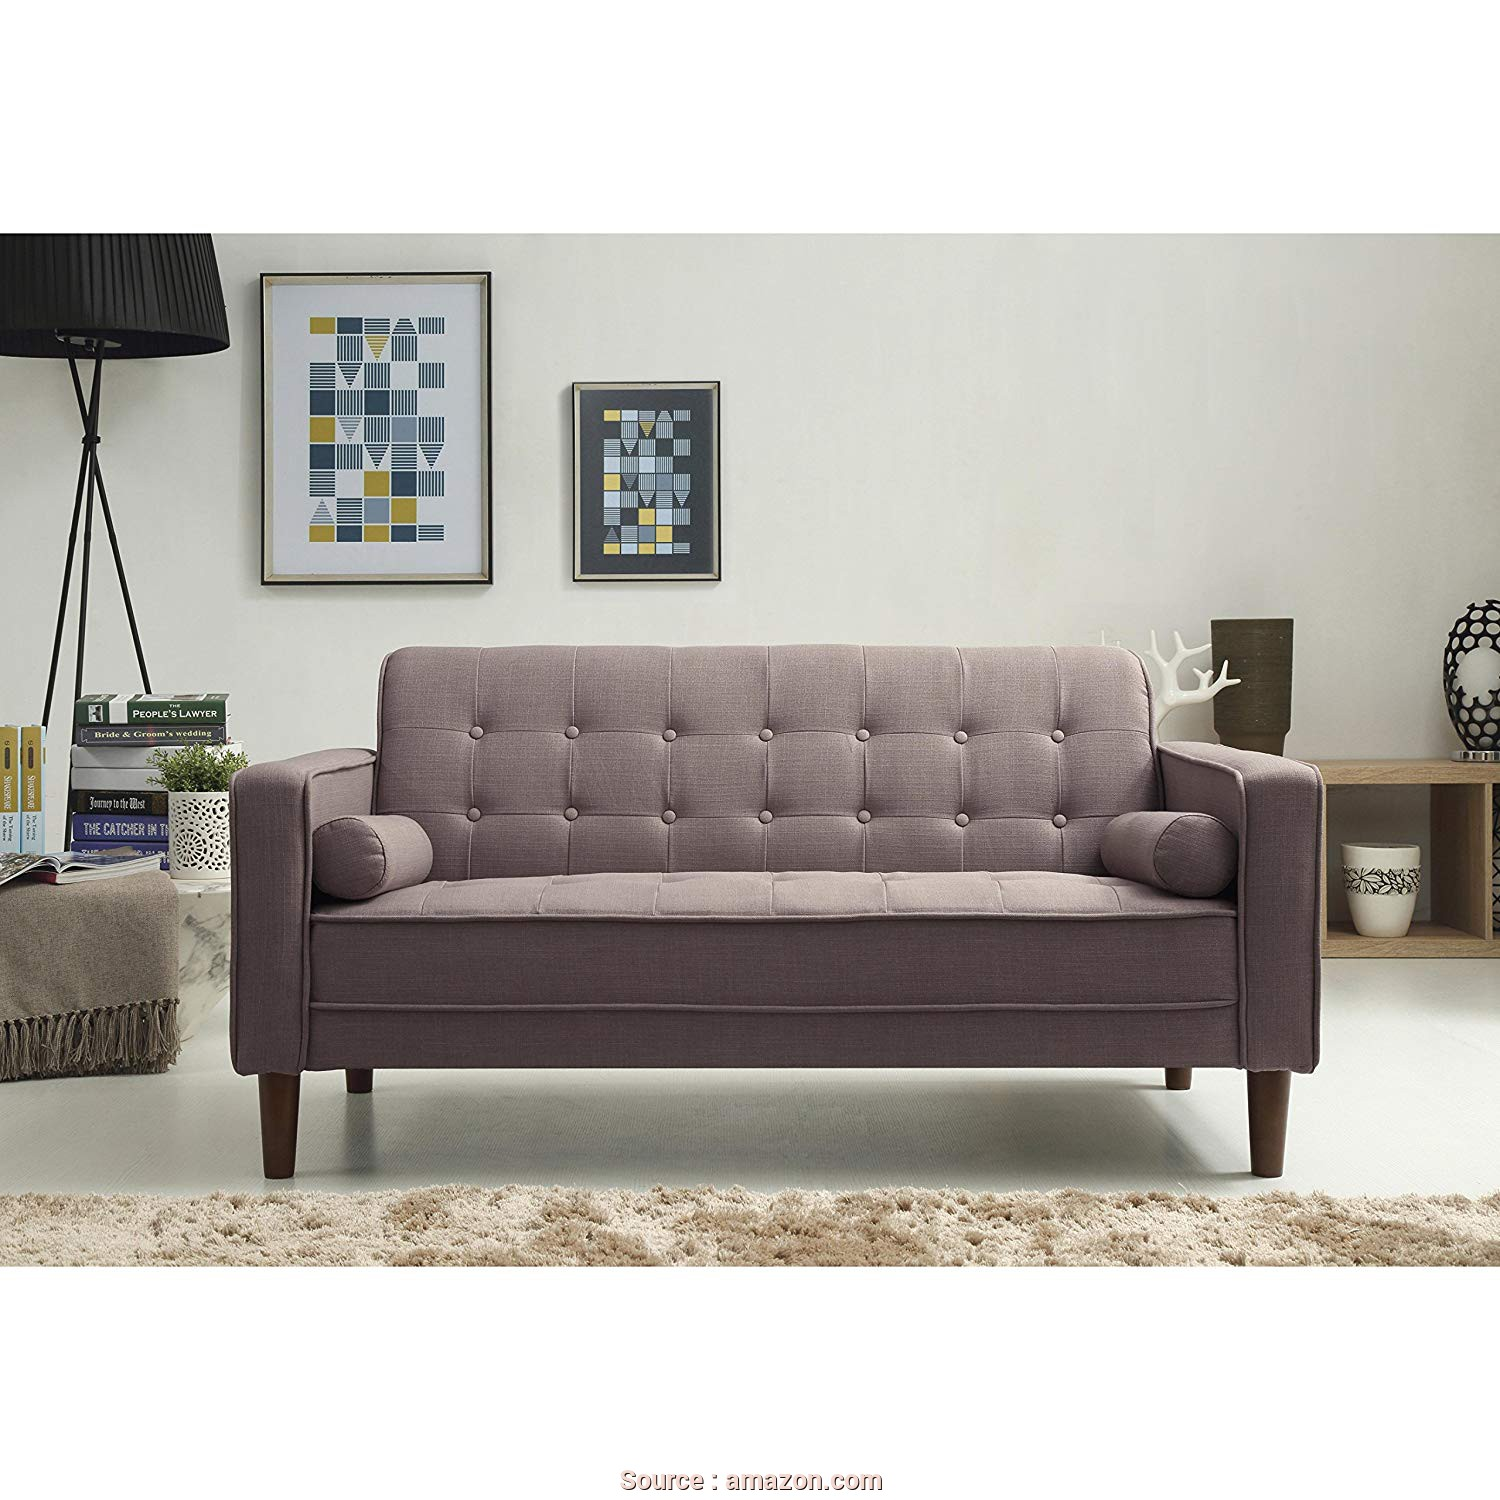 Divano Sofa Team, Semplice Amazon.Com: Standard Design Isaac Sofa Made W/ Linen, Foam,, Wood In Gray Finish 28